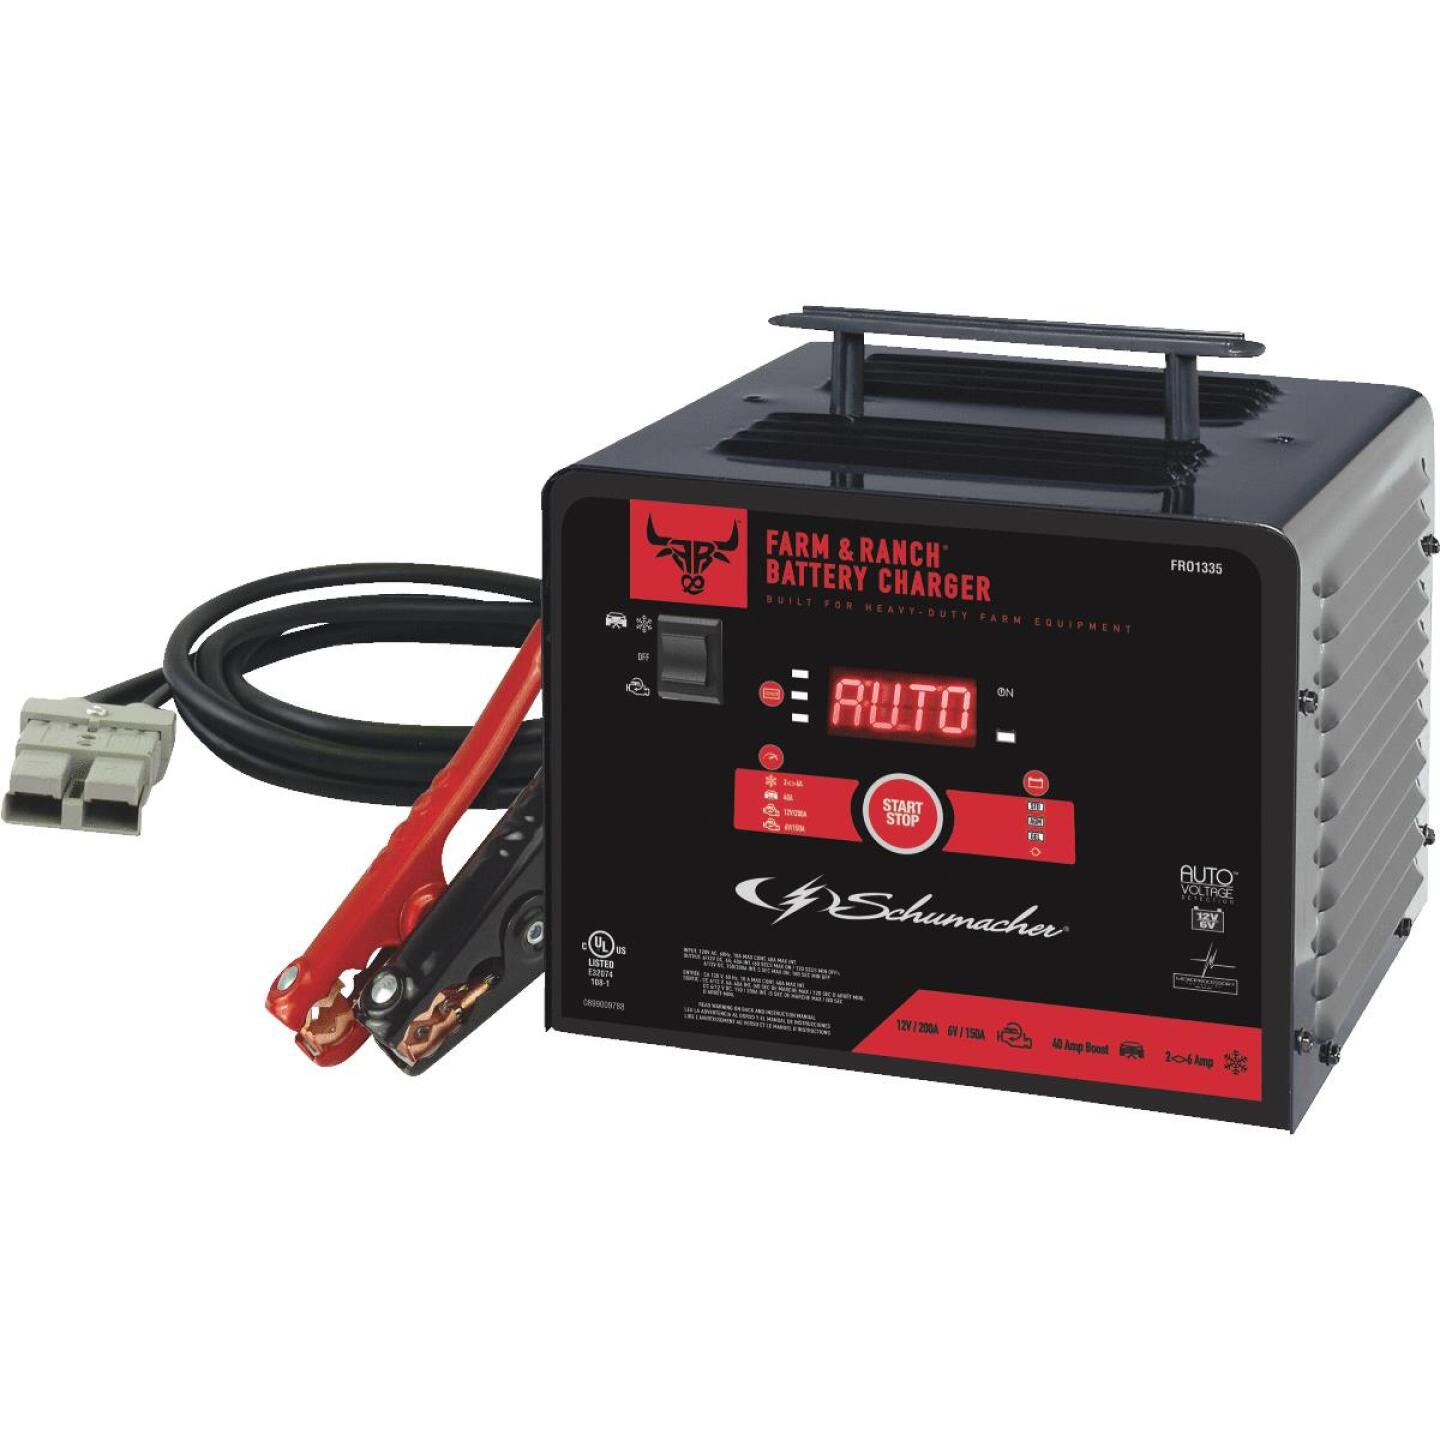 Schumacher 200 Amp Manual Battery Charger Image 1